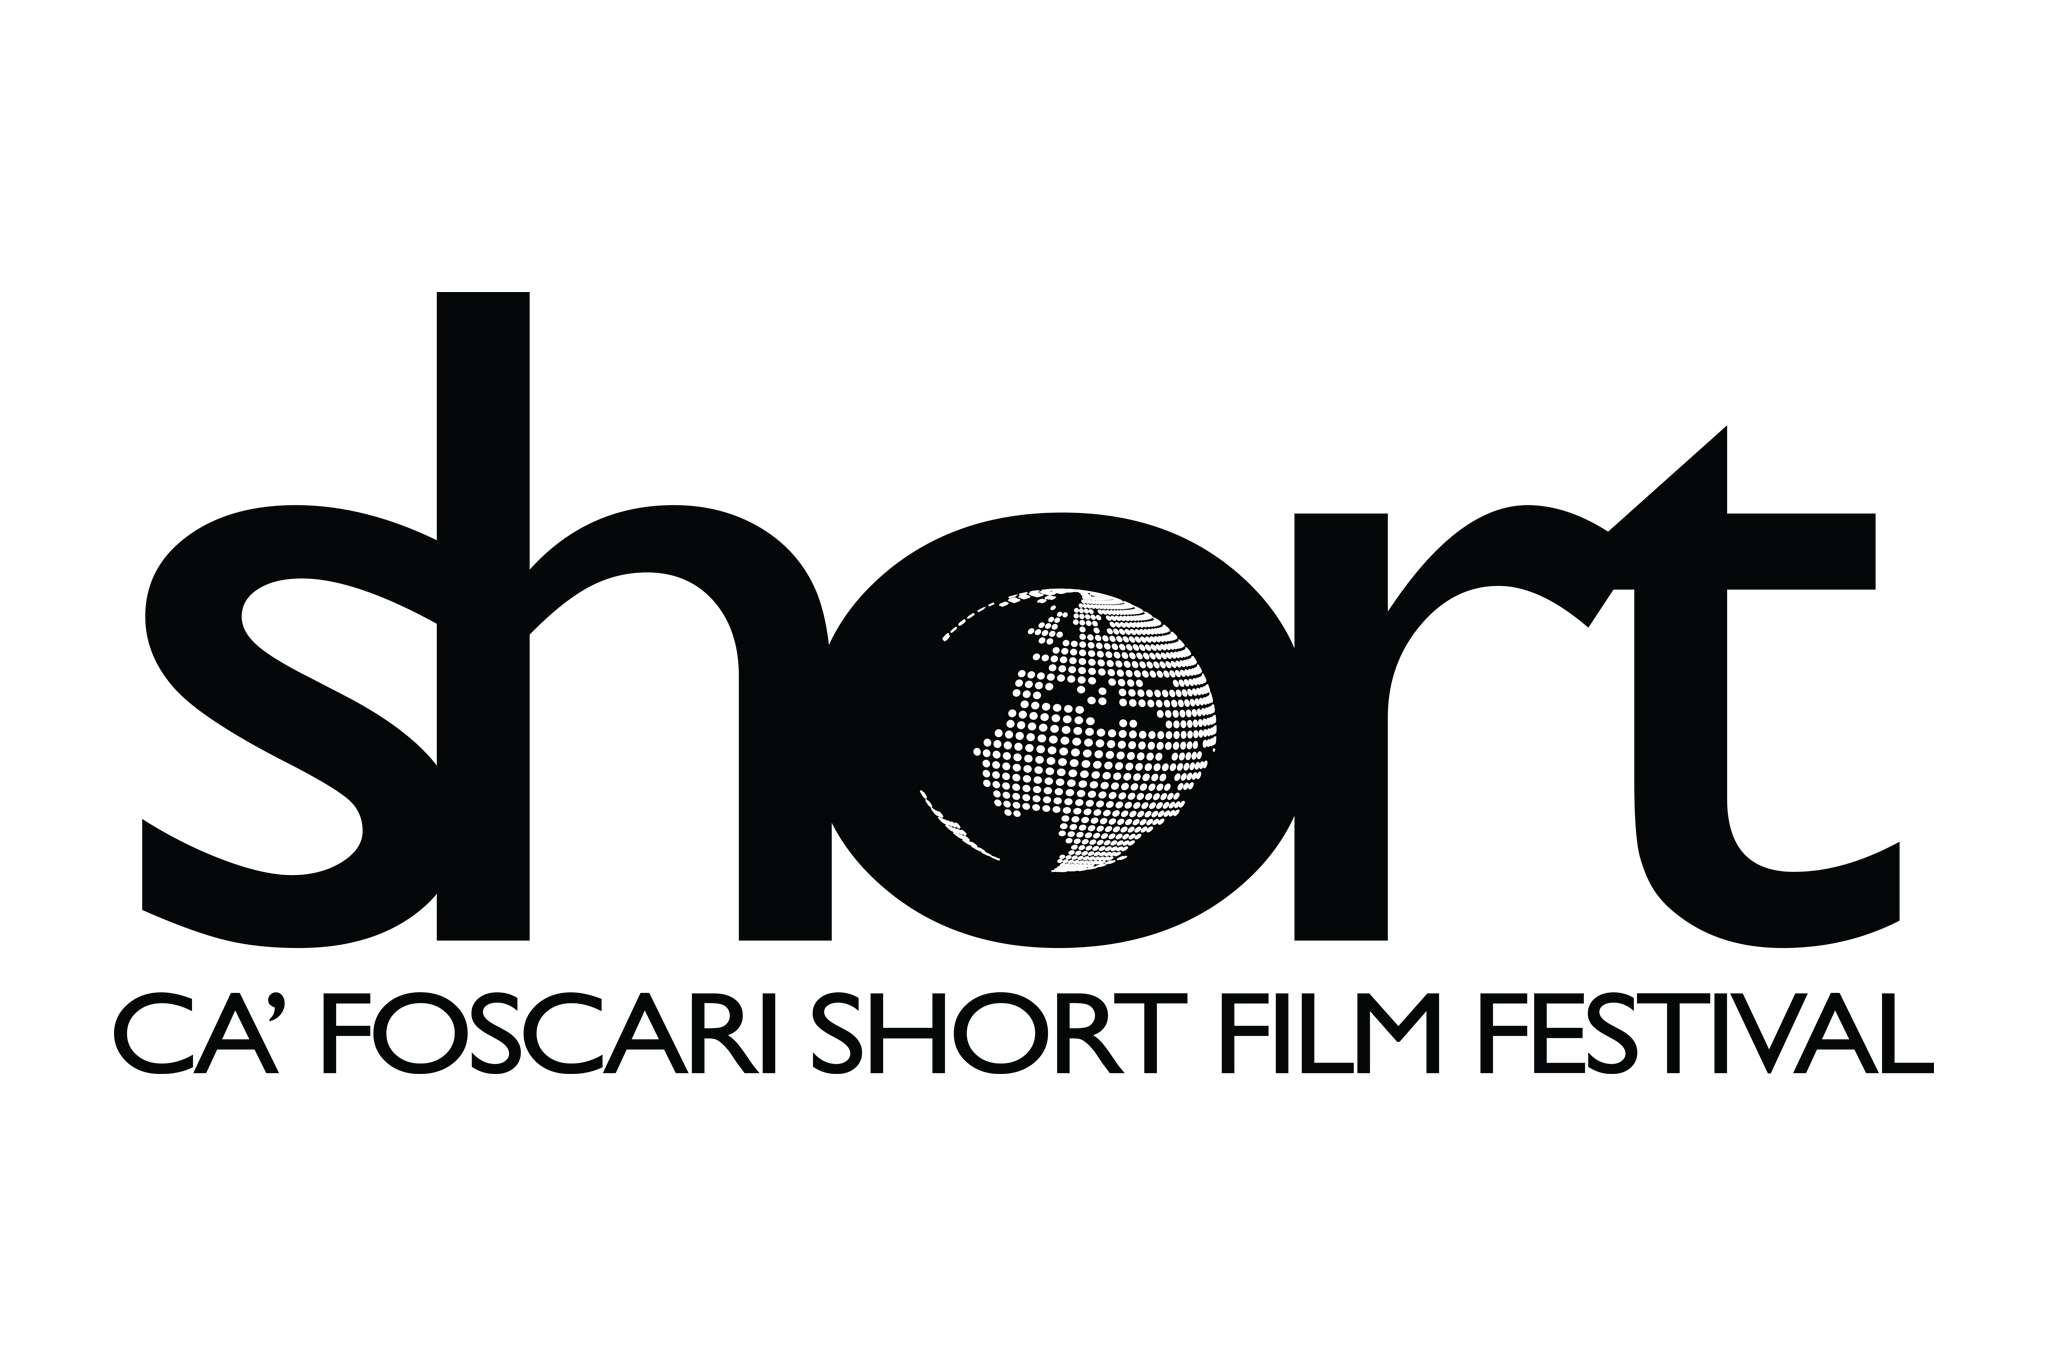 Ca' Foscari Short Film Festival in versione wireless